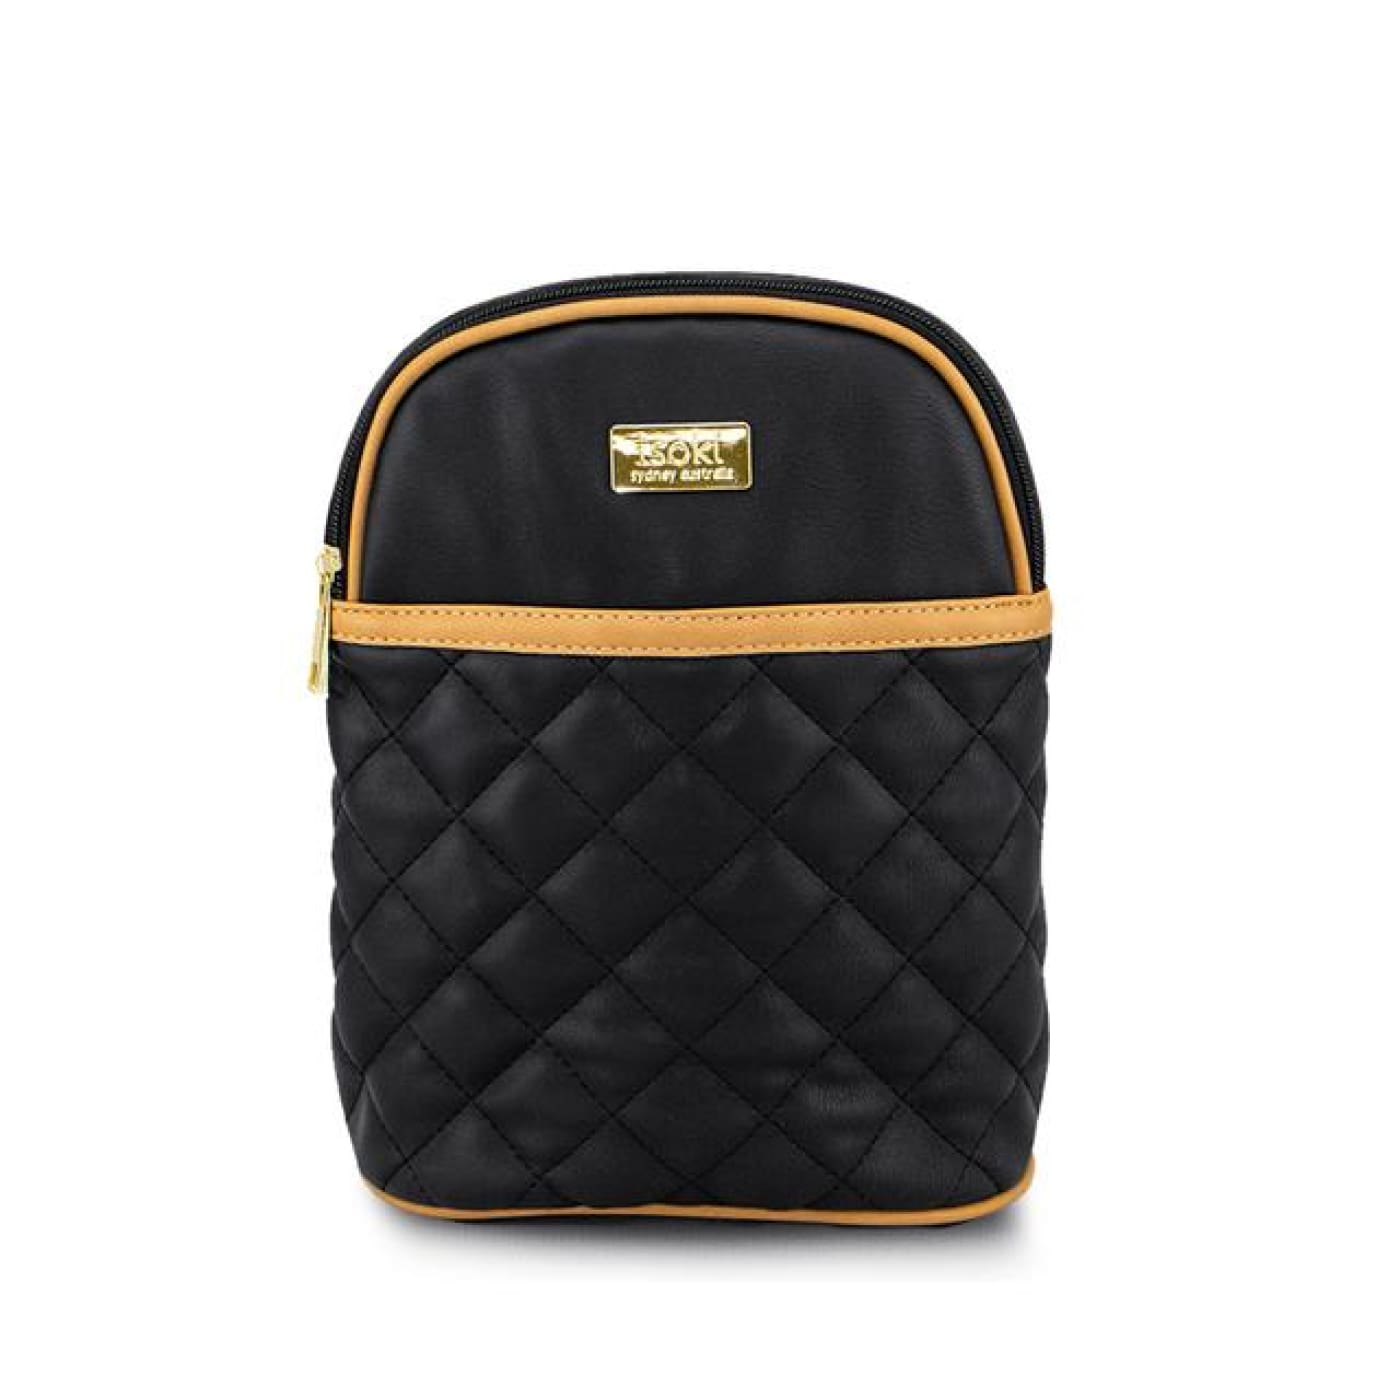 Isoki Ayr Insulated Botle Bag - Black/Tan Quilt - ON THE GO - NAPPY BAGS/LUGGAGE